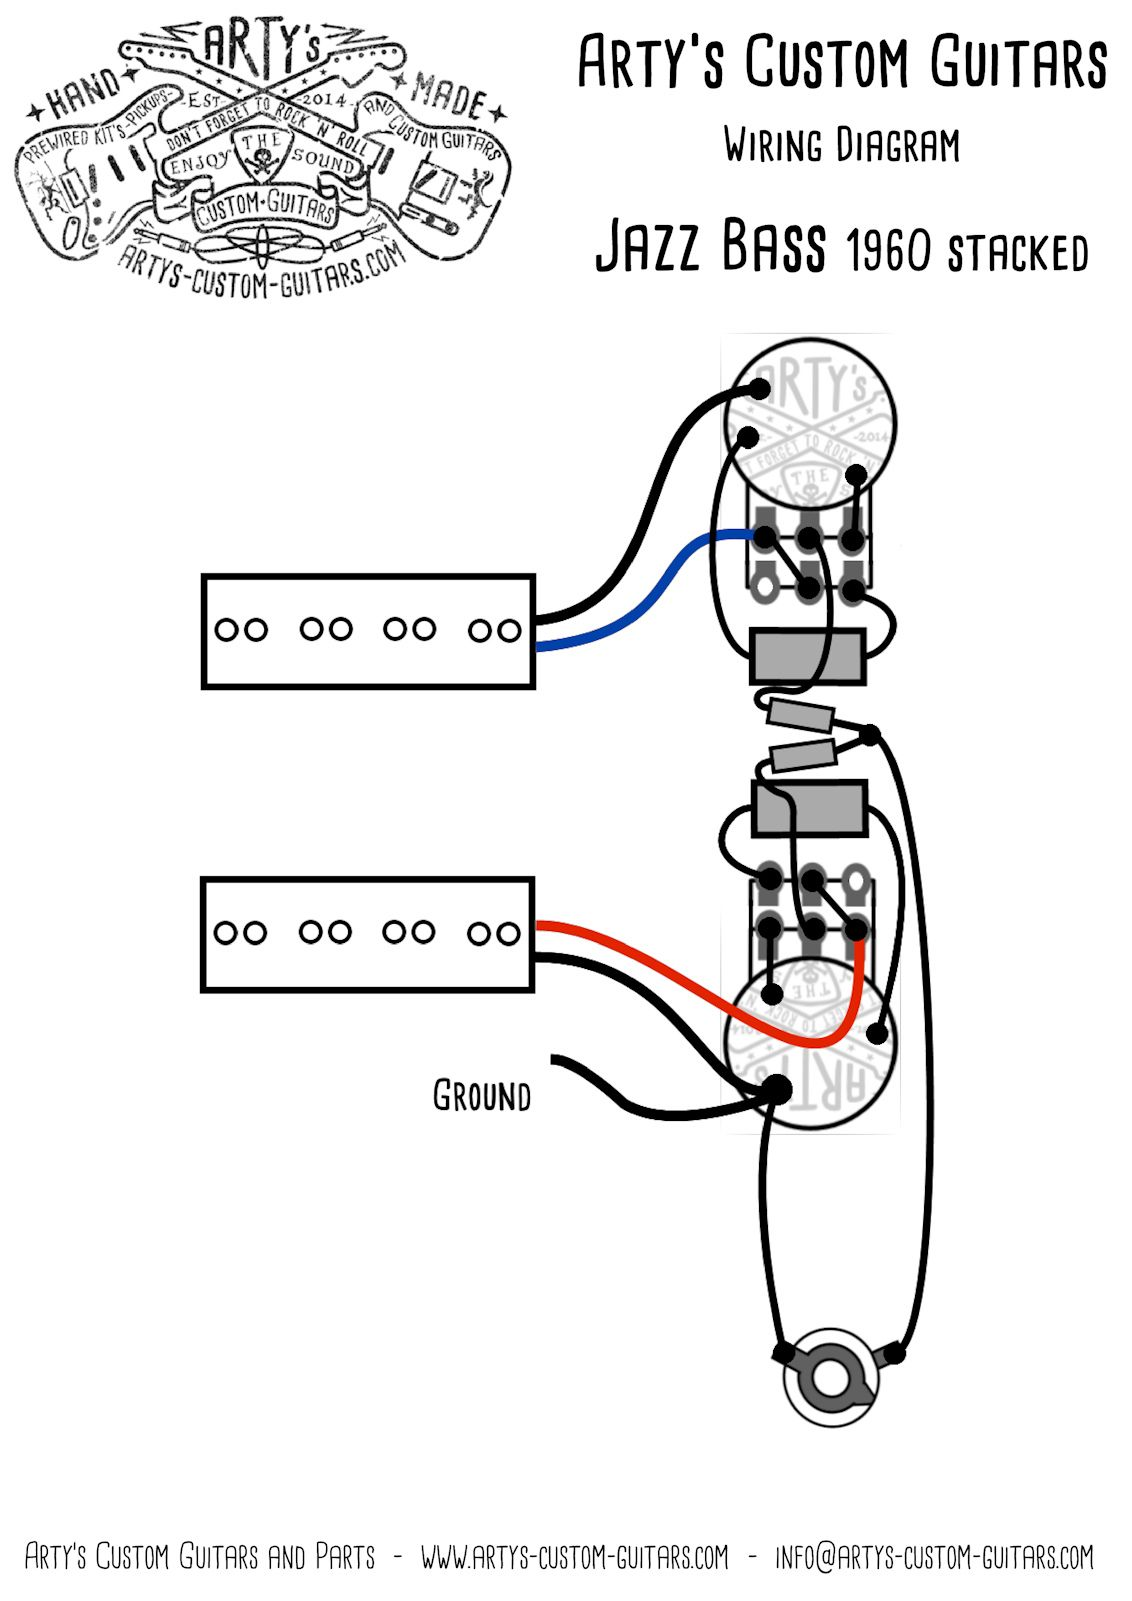 fender precision wiring schematics jazz bass wiring diagram wiring diagram  jazz bass wiring diagram wiring diagram